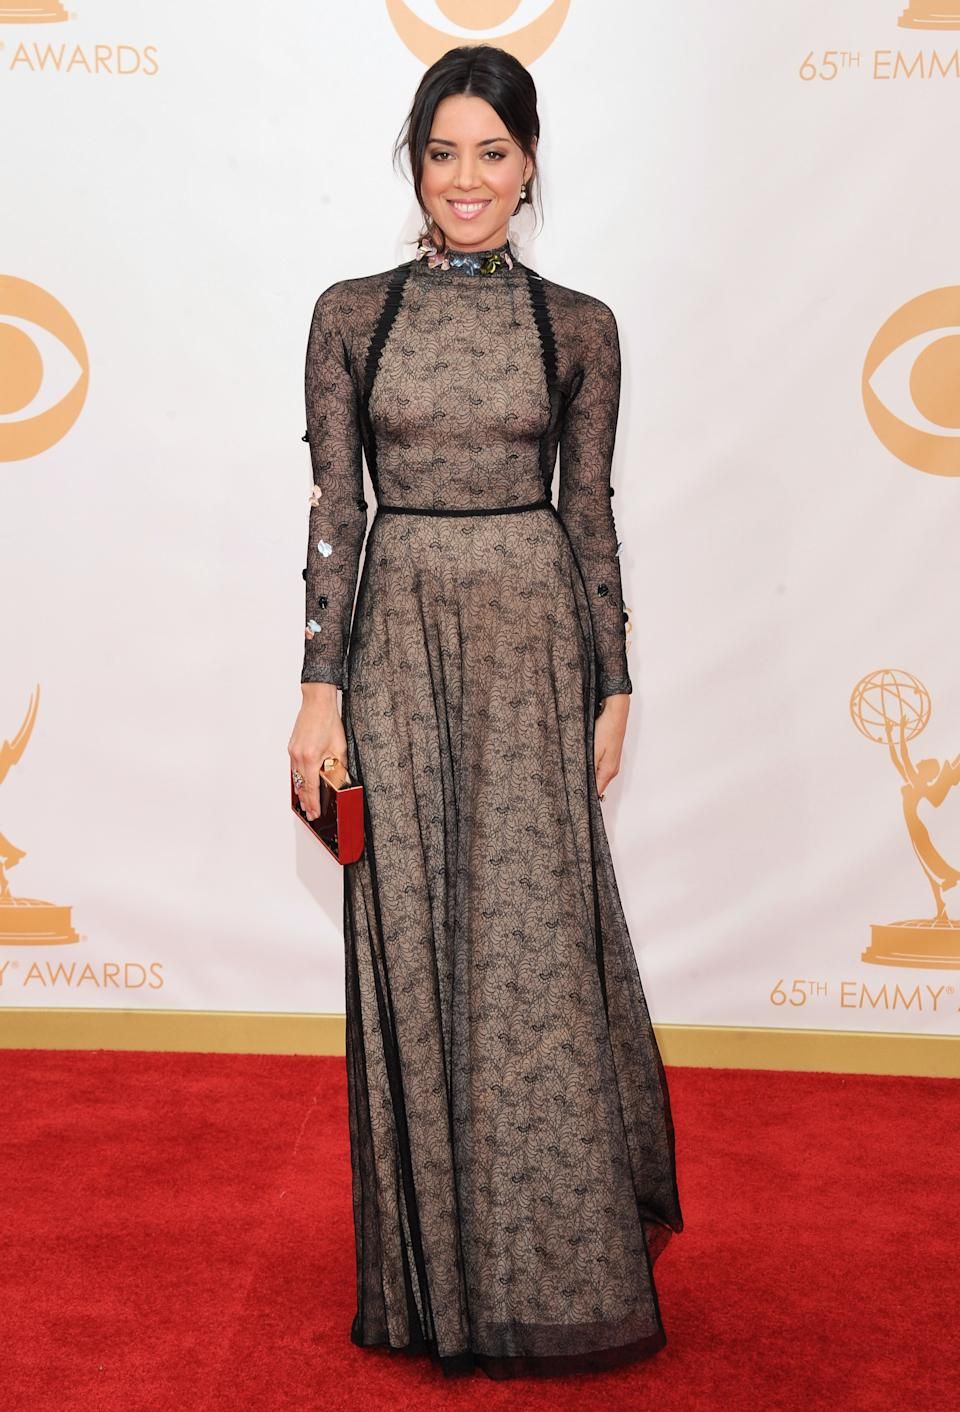 Aubrey Plaza, wearing Marios Schwab, arrives at the 65th Primetime Emmy Awards at Nokia Theatre on Sunday, Sept. 22, 2013, in Los Angeles. (Photo by Jordan Strauss/Invision/AP)